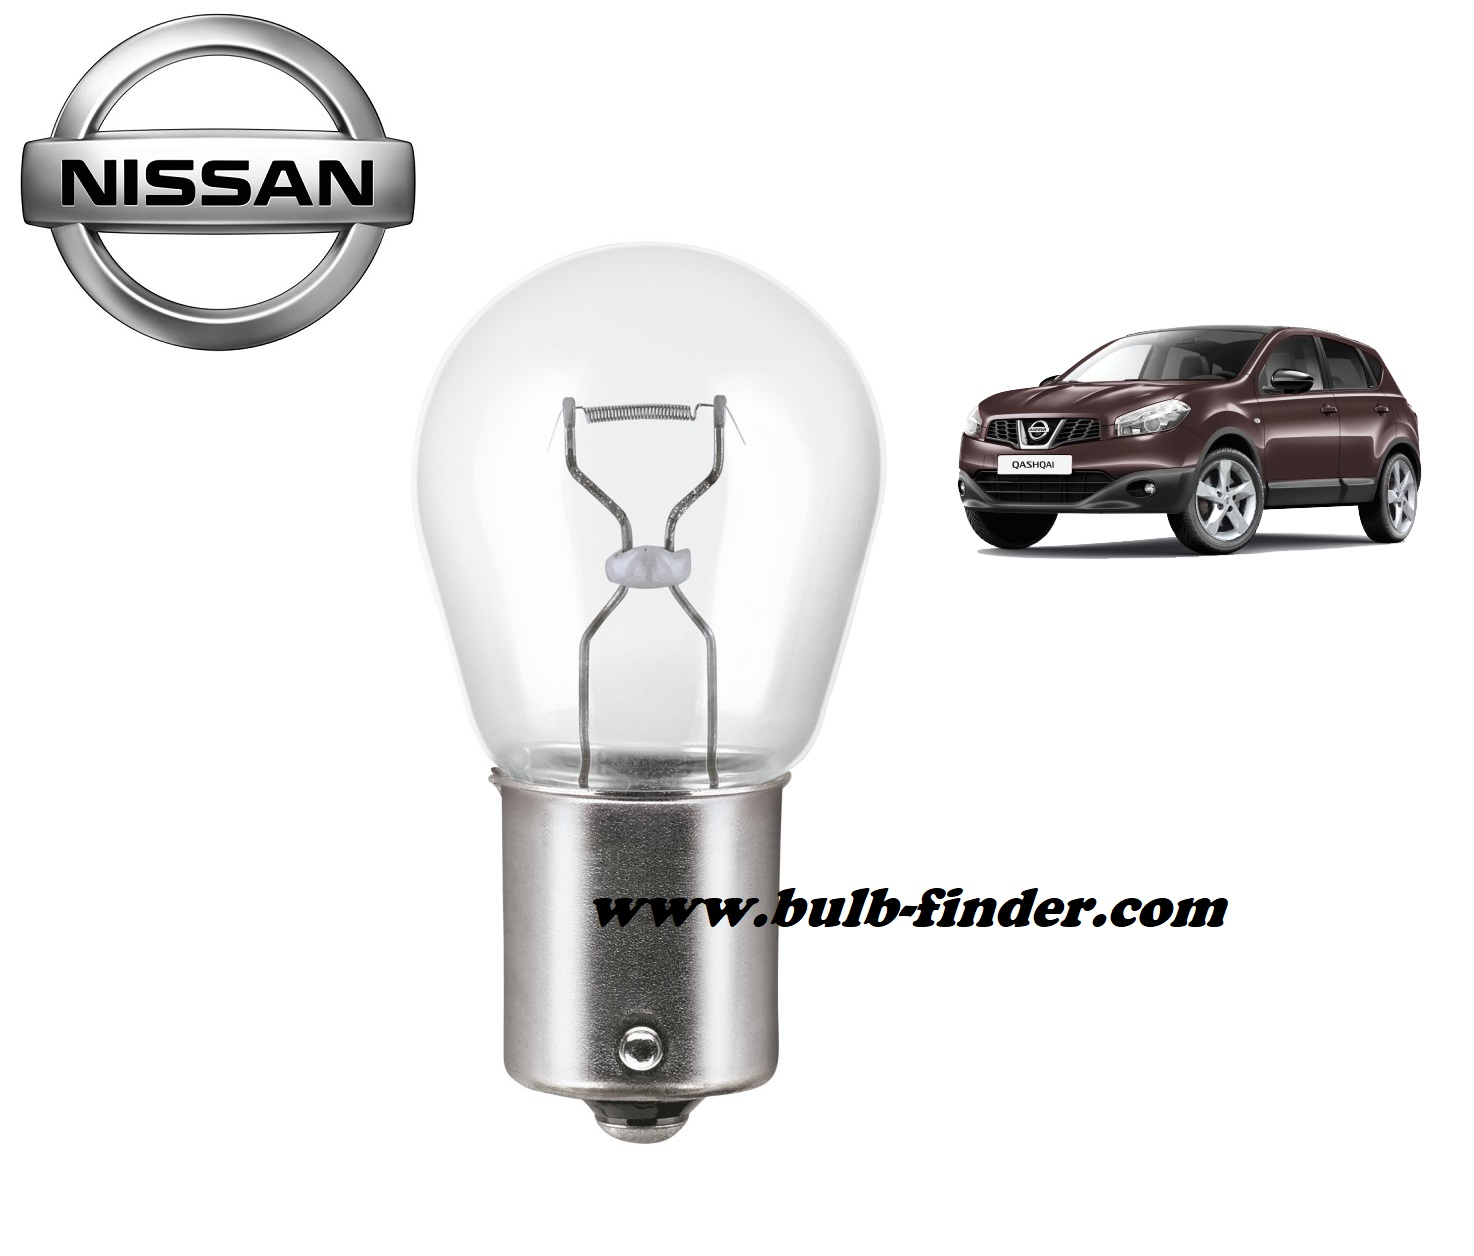 Nissan Qashqai bulb model for driving backward